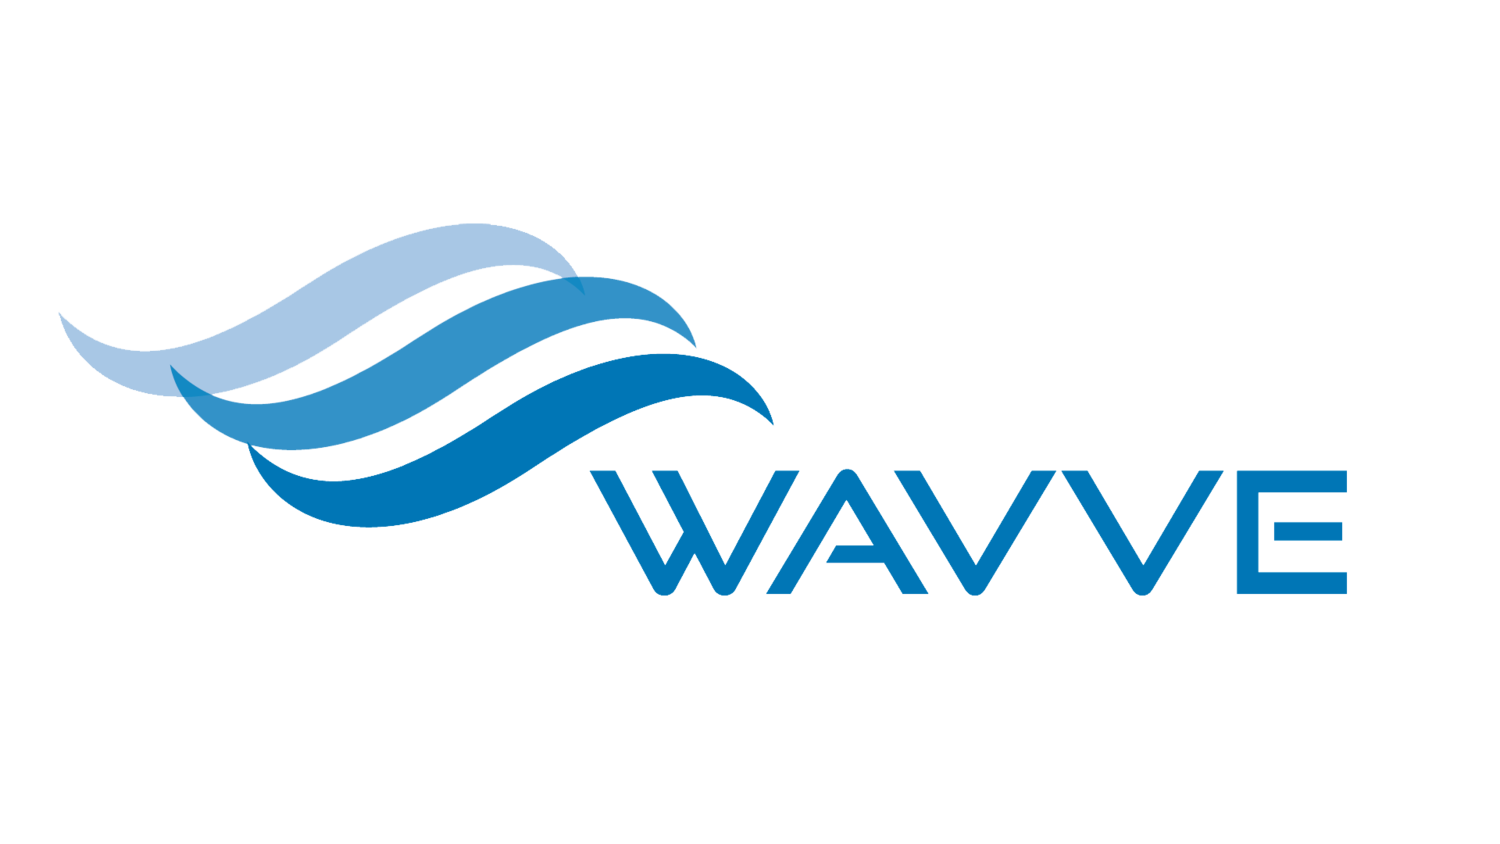 WAVVE - Made From 100% Recycled Plastic